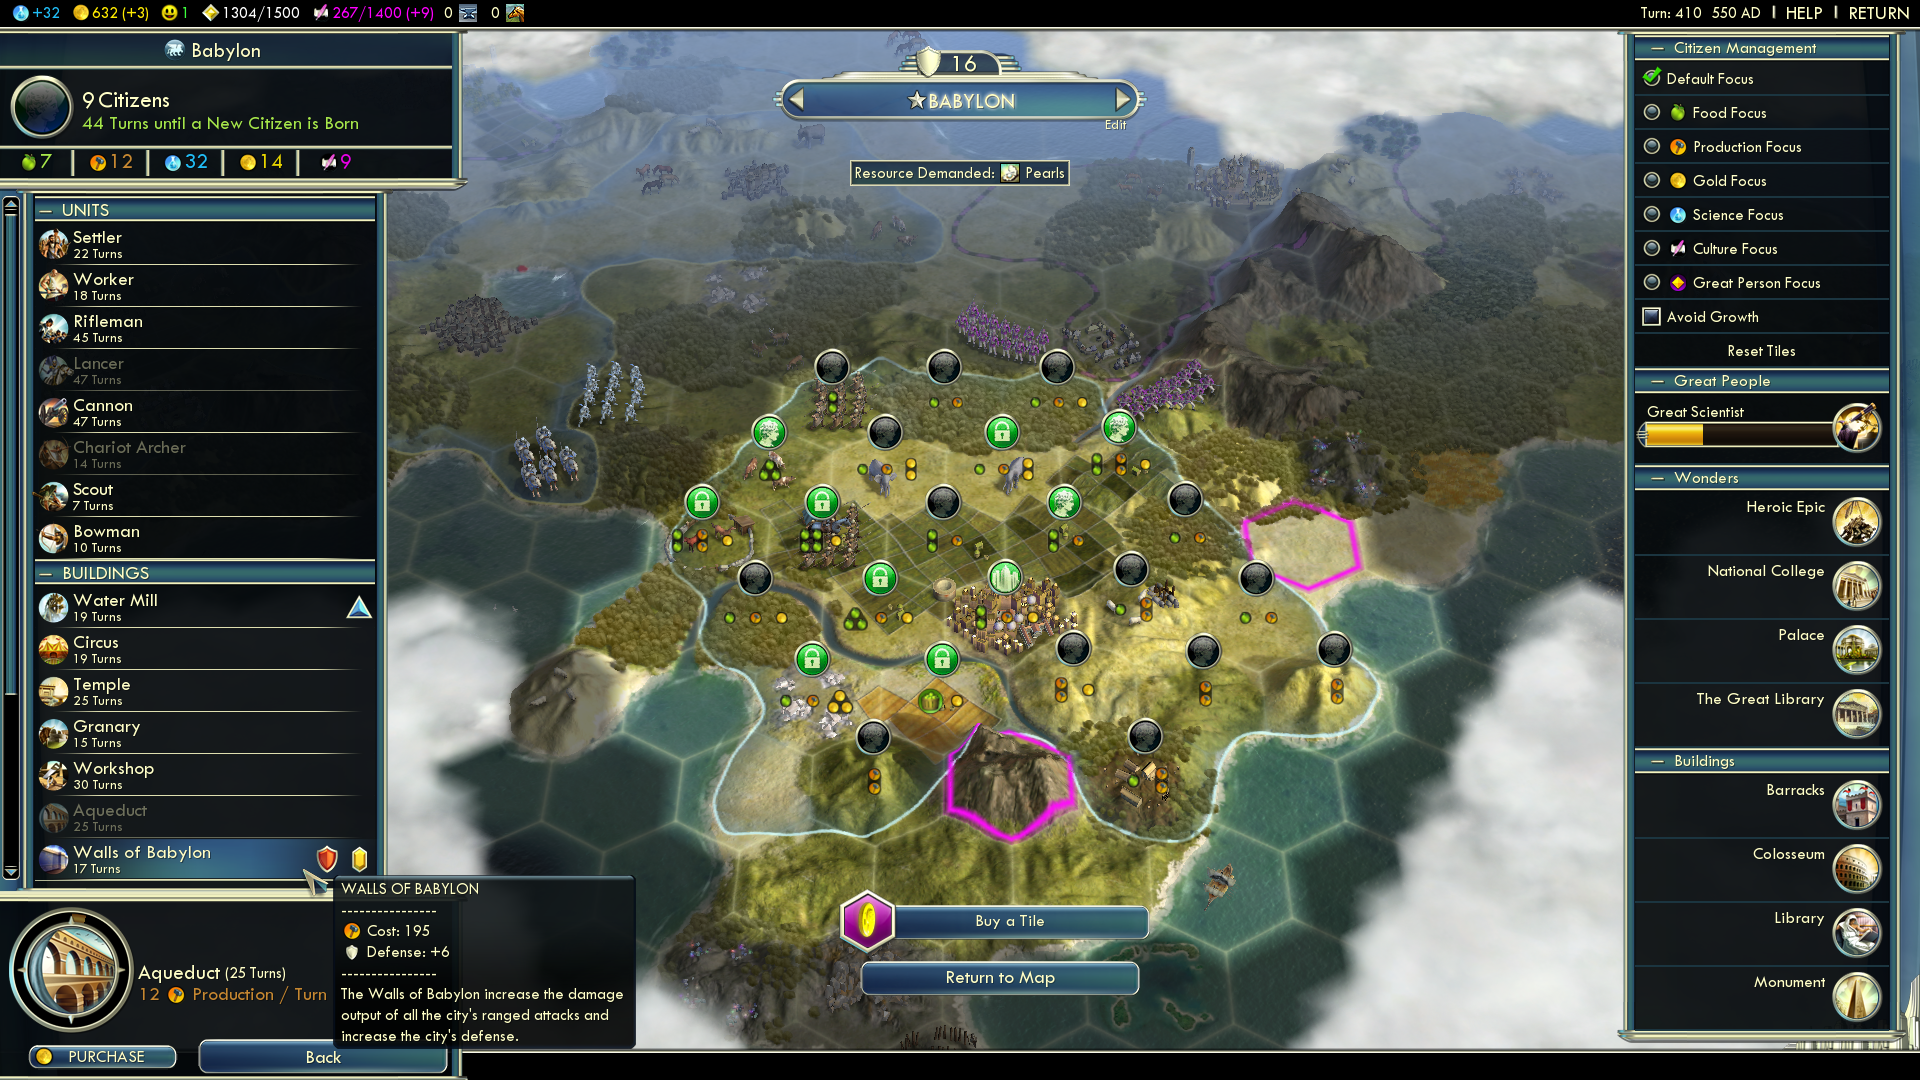 Sid Meier's Civilization V: Babylon (Nebuchadnezzar II) Windows Building the Walls of Babylon